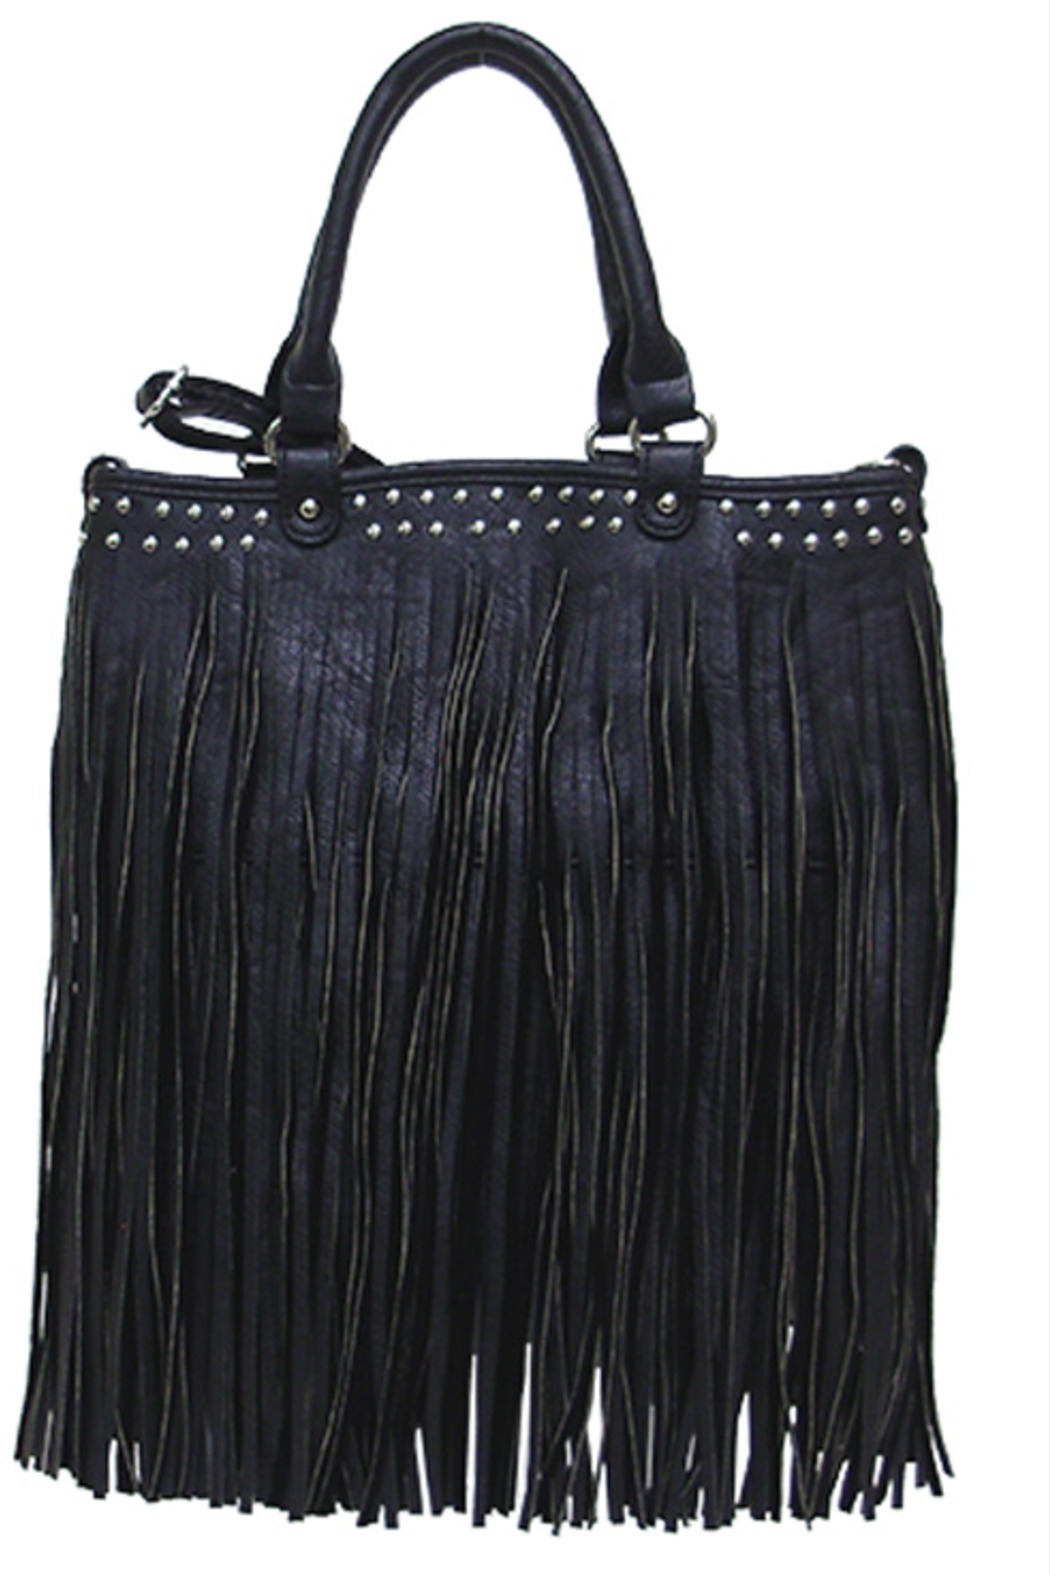 Shop black suede fringe purse from Bottega Veneta, Elena Ghisellini, Rebecca Minkoff and from Barneys New York, Farfetch, TheRealReal and many more. Find thousands of .